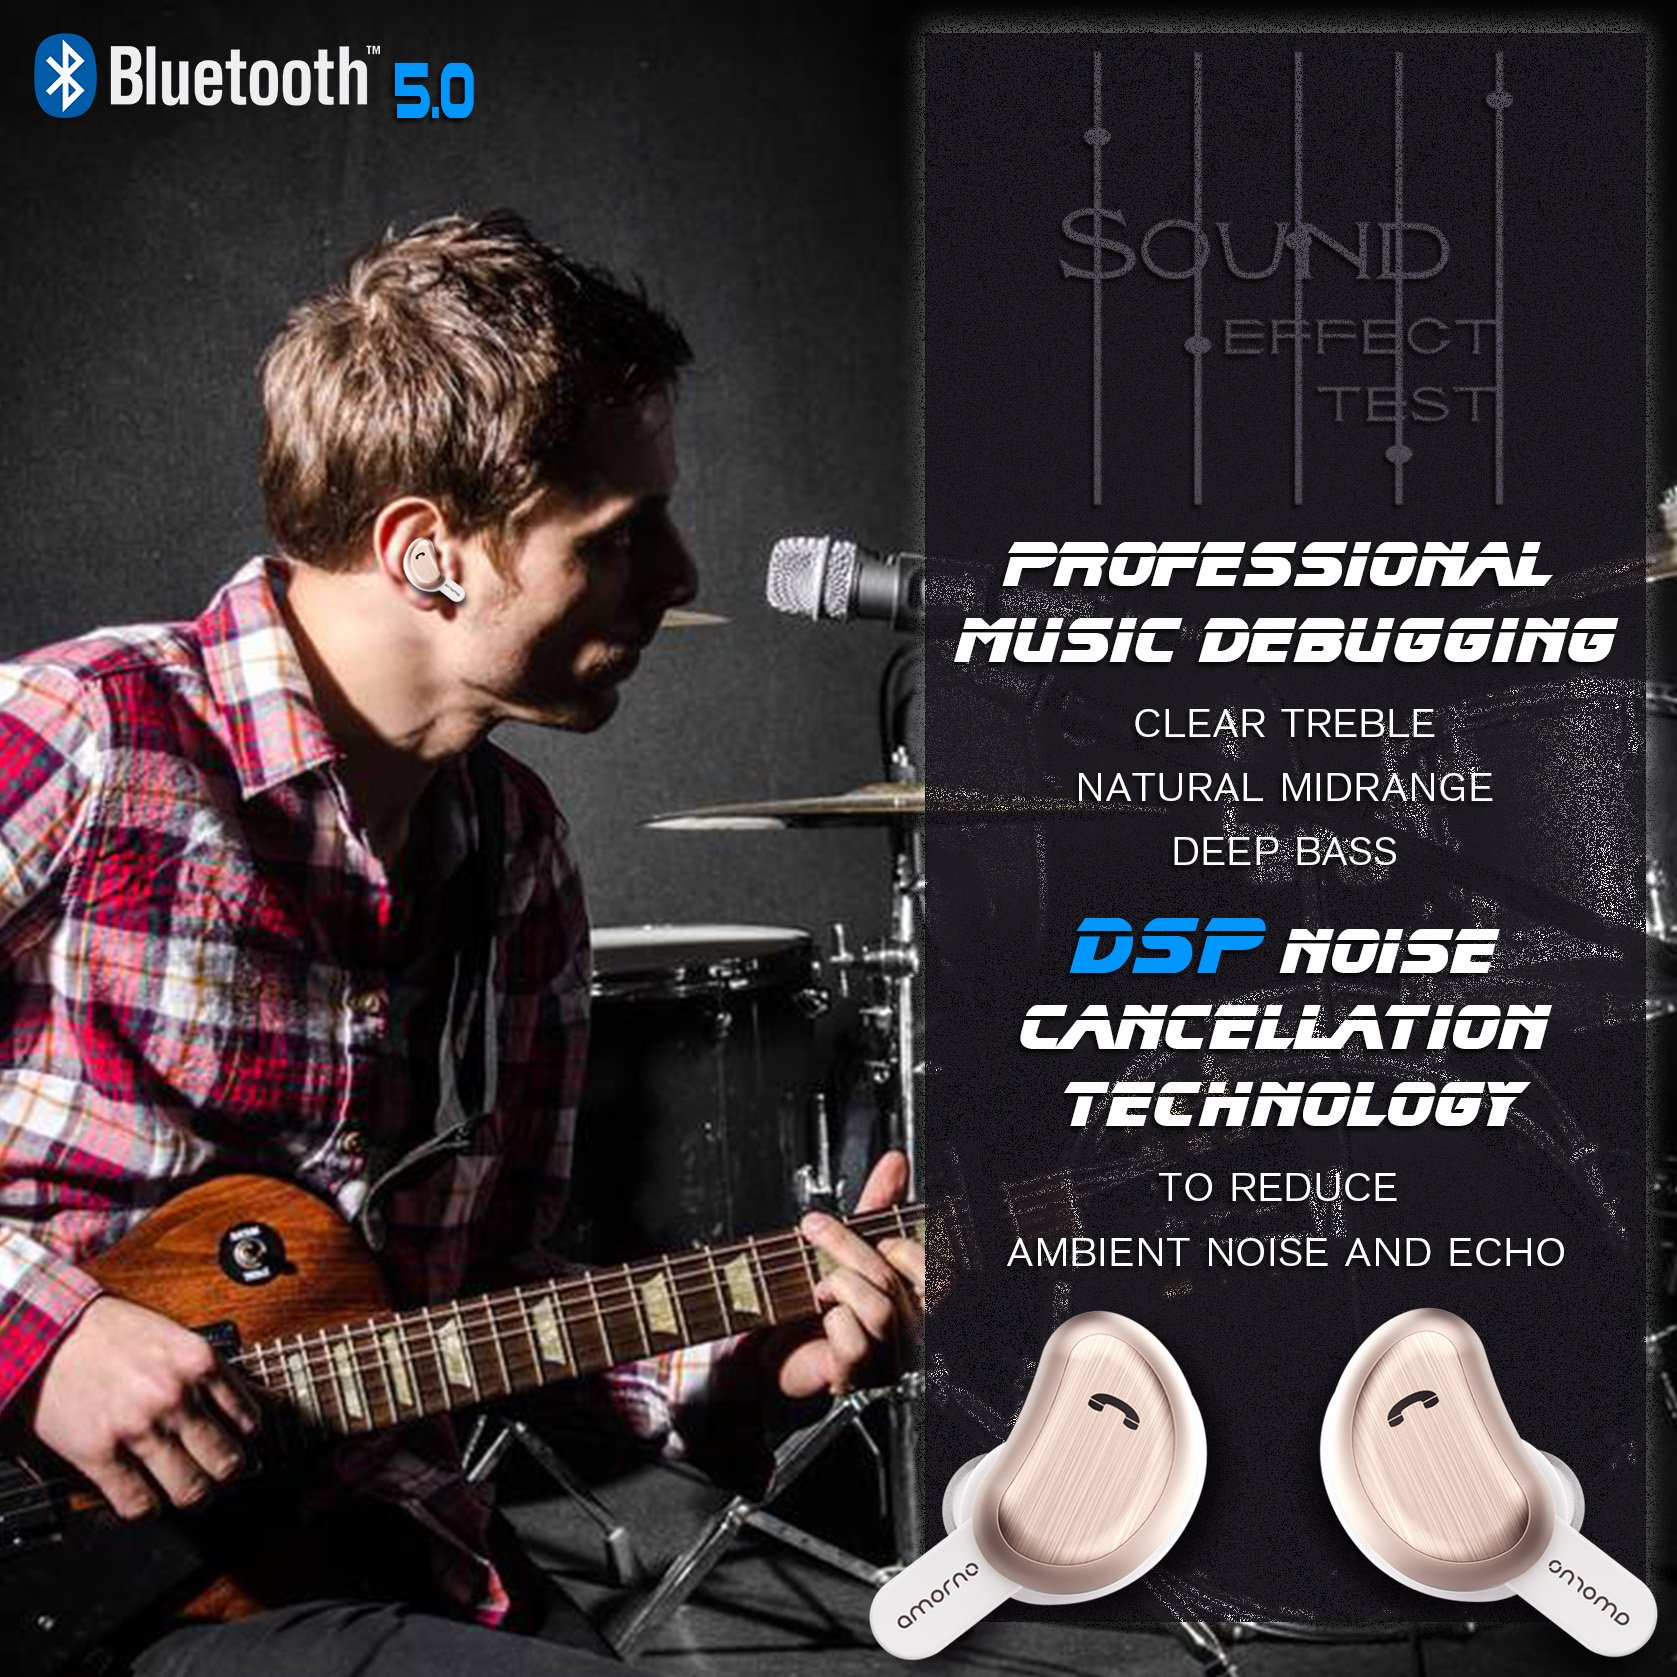 Details about Wireless Earbuds, AMORNO True Bluetooth Headphones In-Ear  Deep Bass Noise